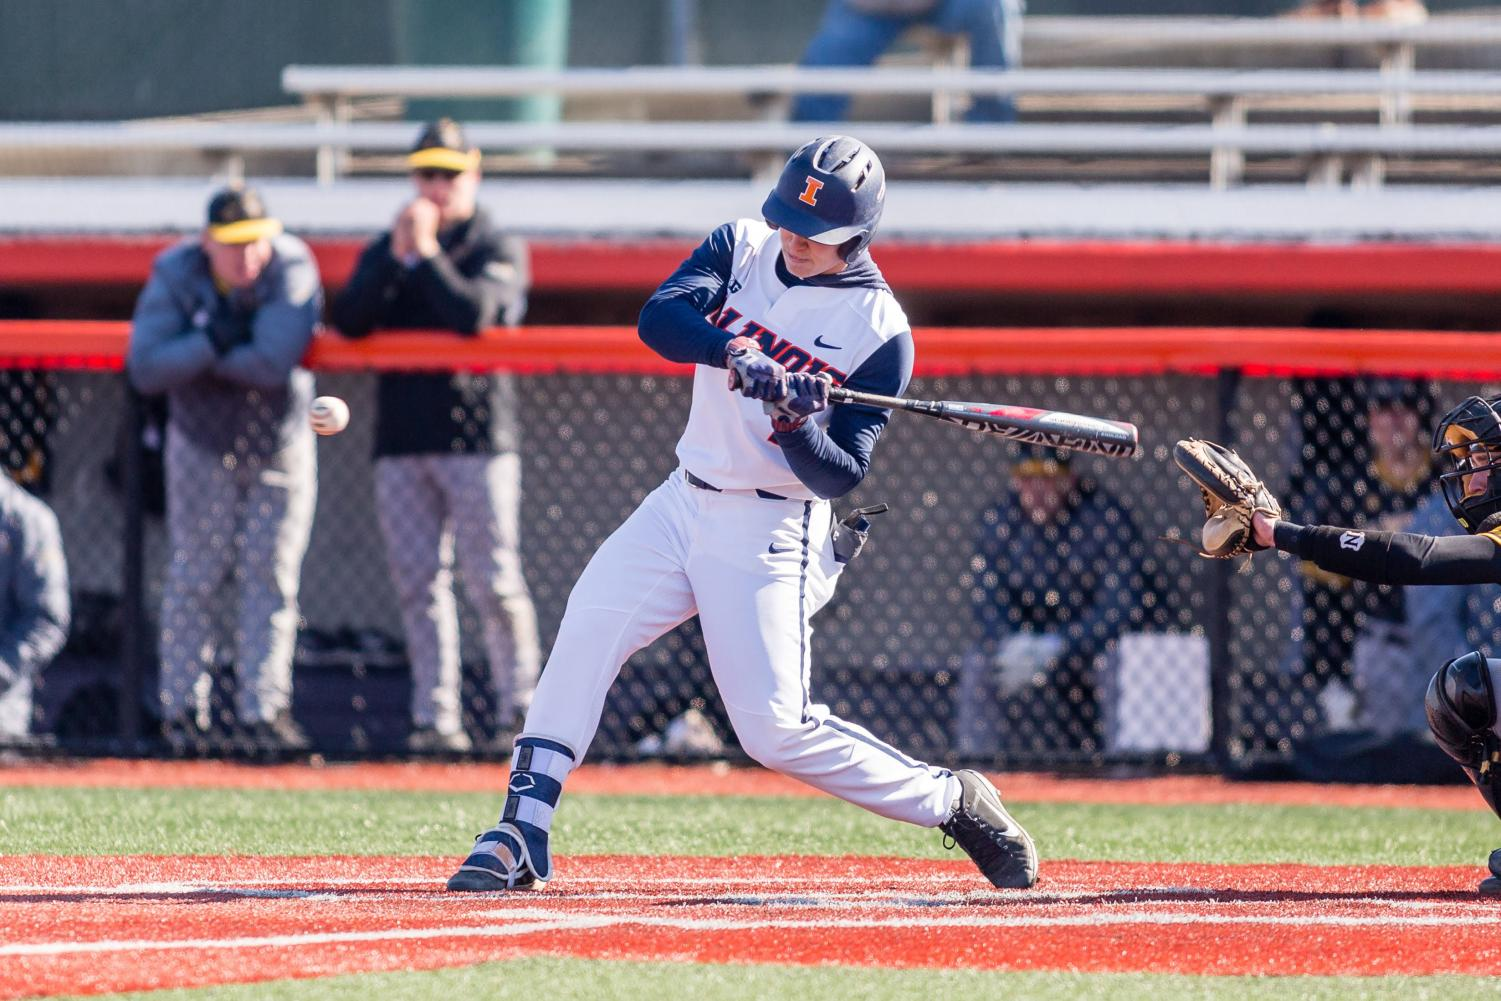 Illinois outfielder Jack Yalowitz (3) swings at the pitch during the game against Milwaukee at the Illinois Field on Wednesday, March 14, 2018.